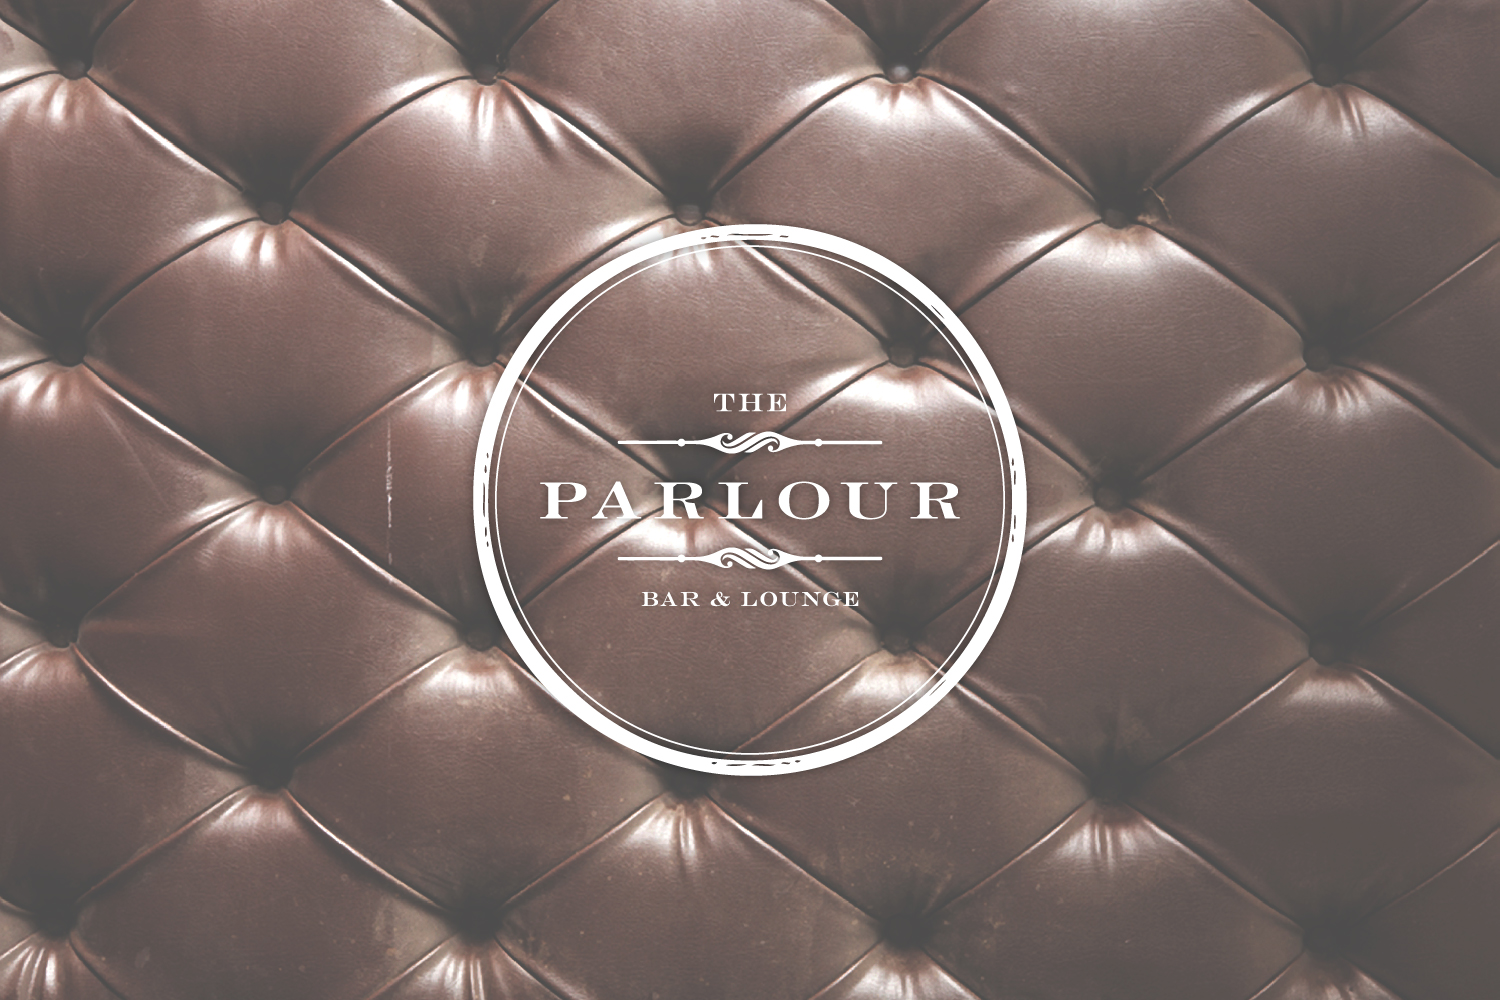 the parlour circle vintage logo on tufted brown leather image, bar and lounge, las vegas nevada, logo design, upscale bar, luxurious leather club chairs